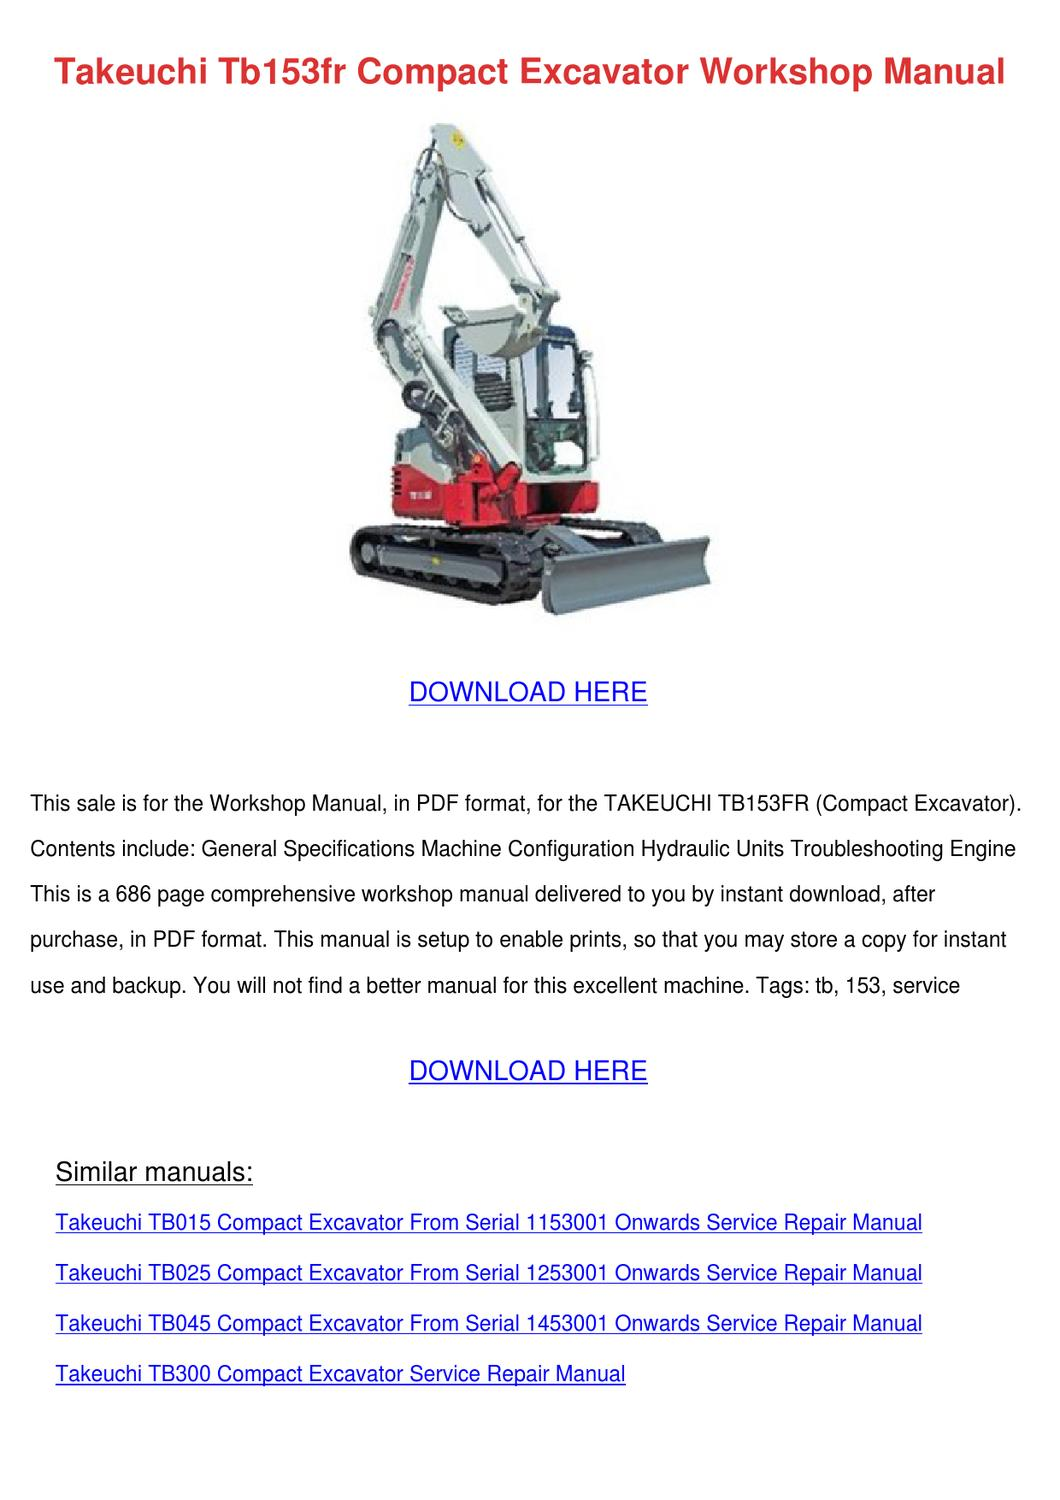 Takeuchi Tb153fr Compact Excavator Workshop M by Rave Caram - issuu